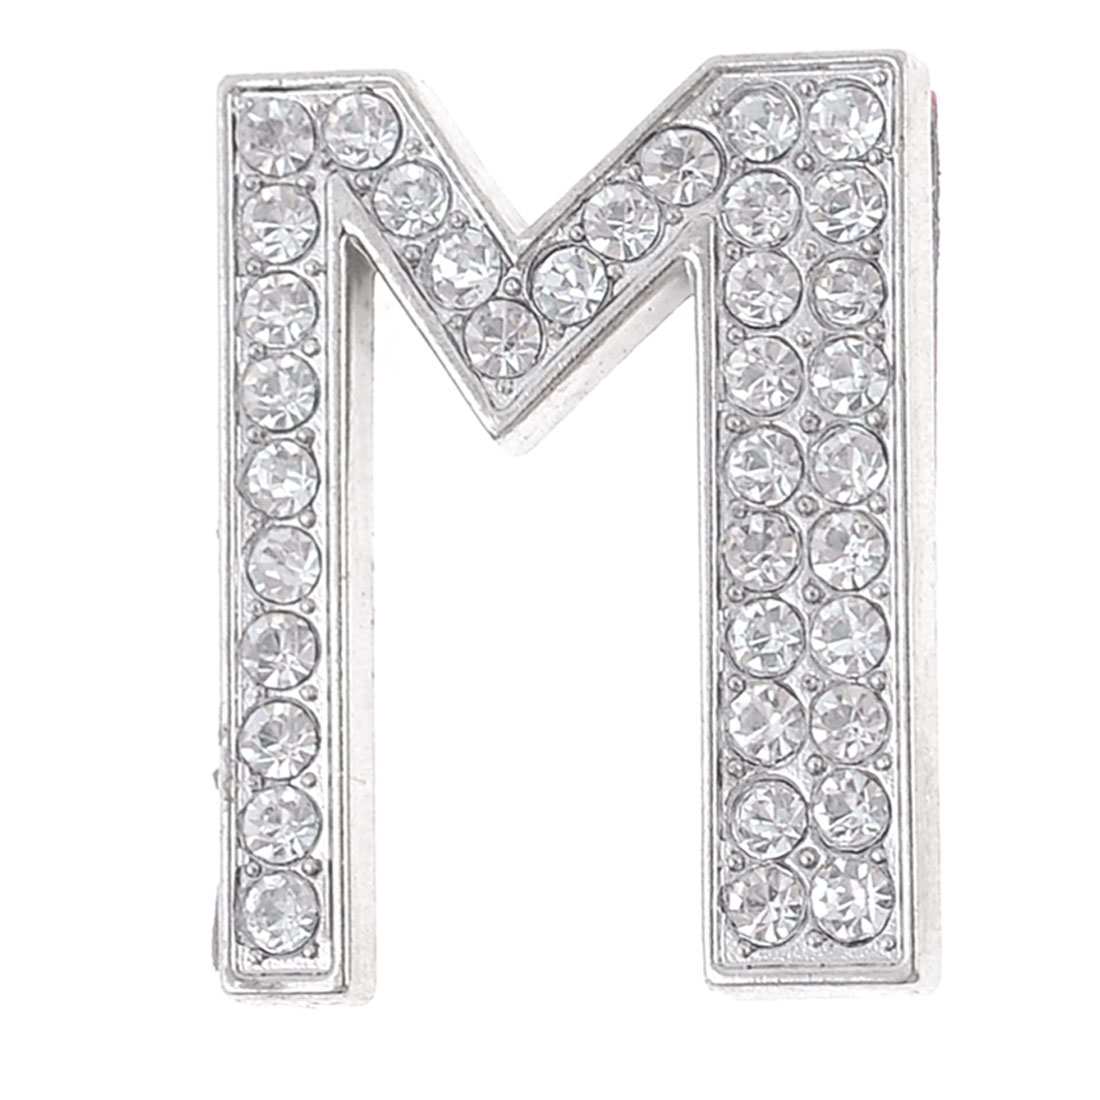 Car Decor Silver Tone Metal Self Adhesive Rhinestone Letter M Shaped Sticker